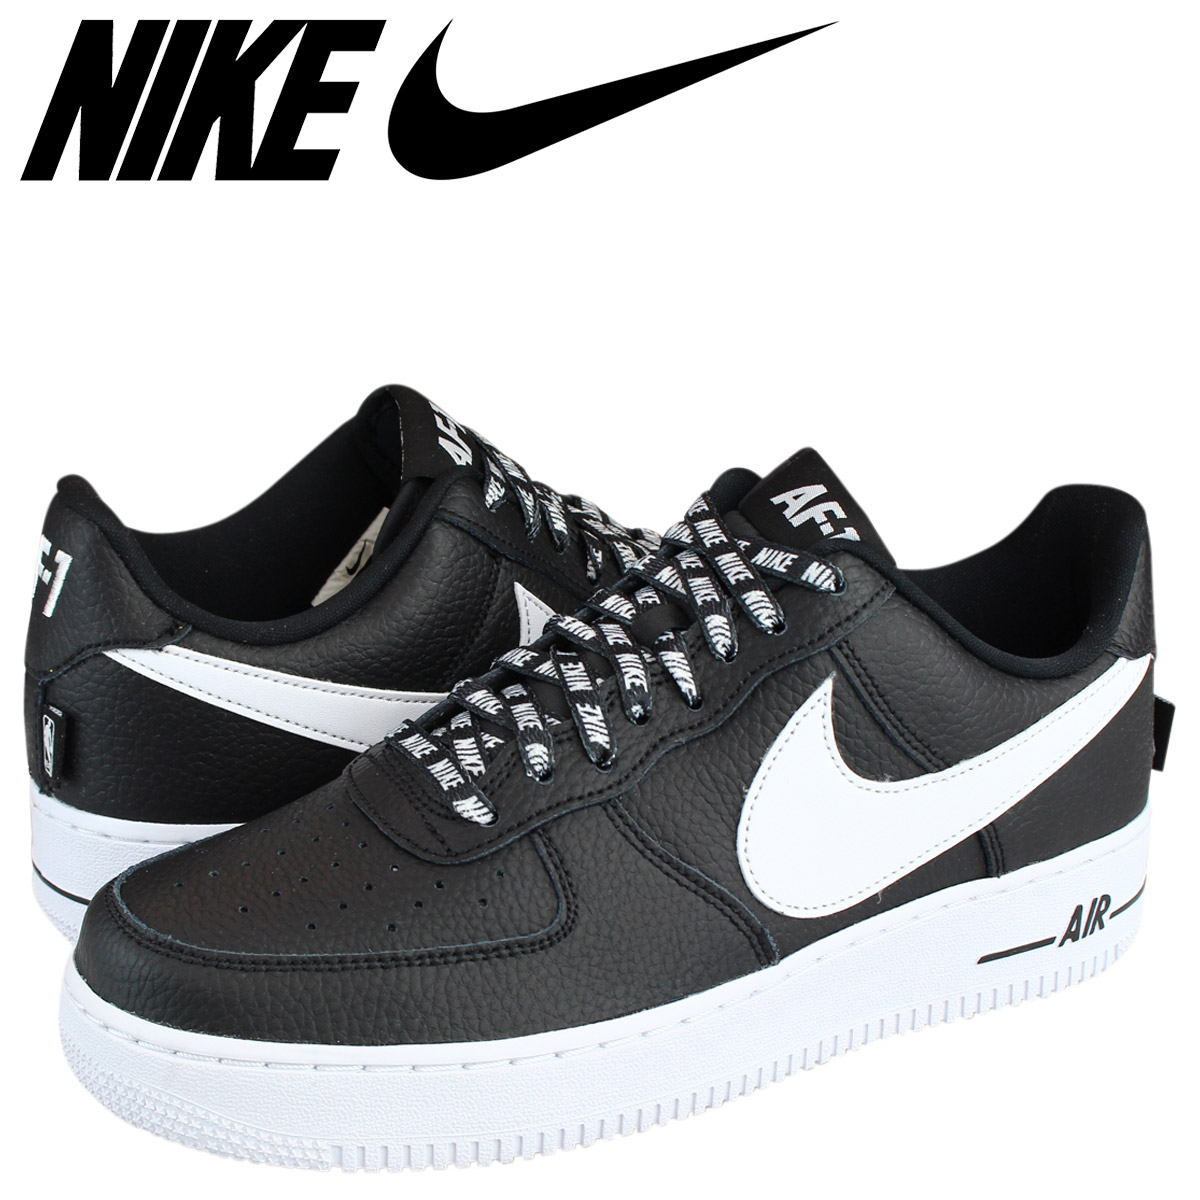 Nike NIKE air force 1 07 LV8 sneakers AIR FORCE 1 STATEMENT GAME  823,511-007 men's black white